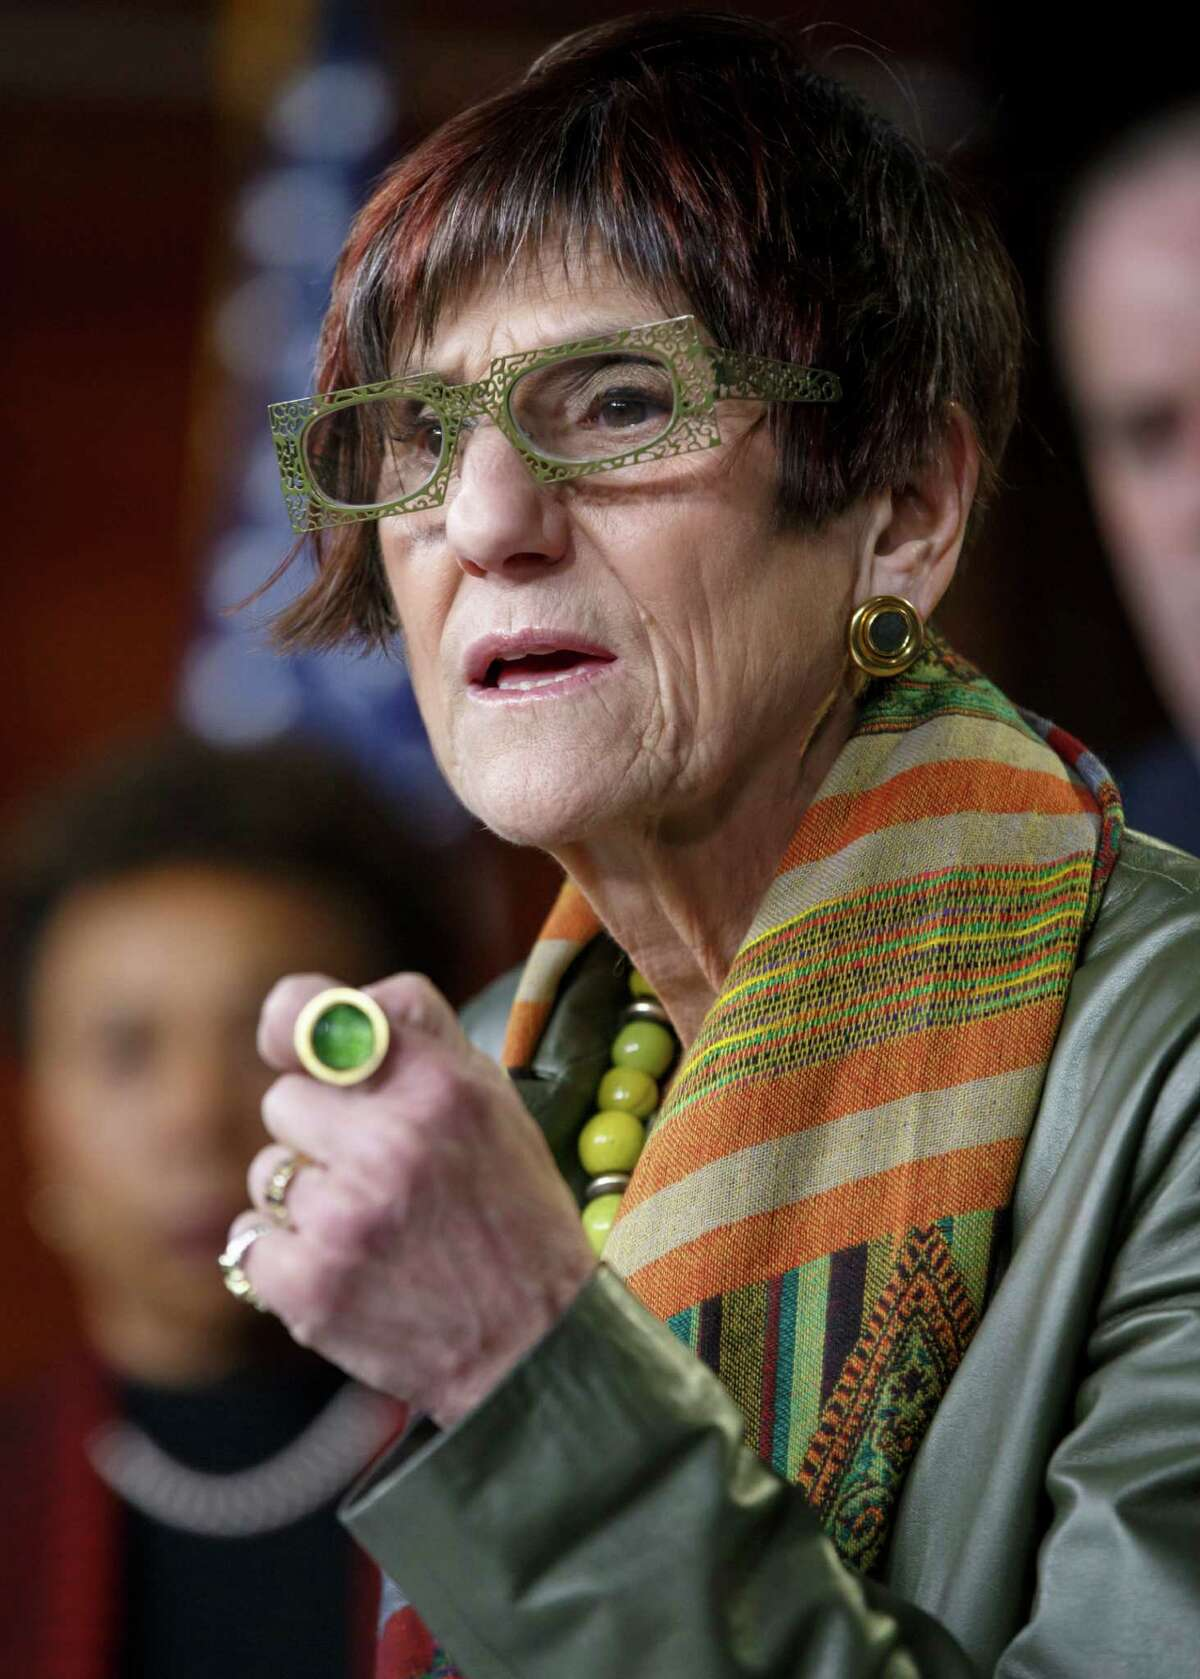 """The GAO report shows that Medicare """"was not verifying network adequacy. That's their job and they abdicated that responsibility,"""" said U.S. Rep. Rosa DeLauro."""